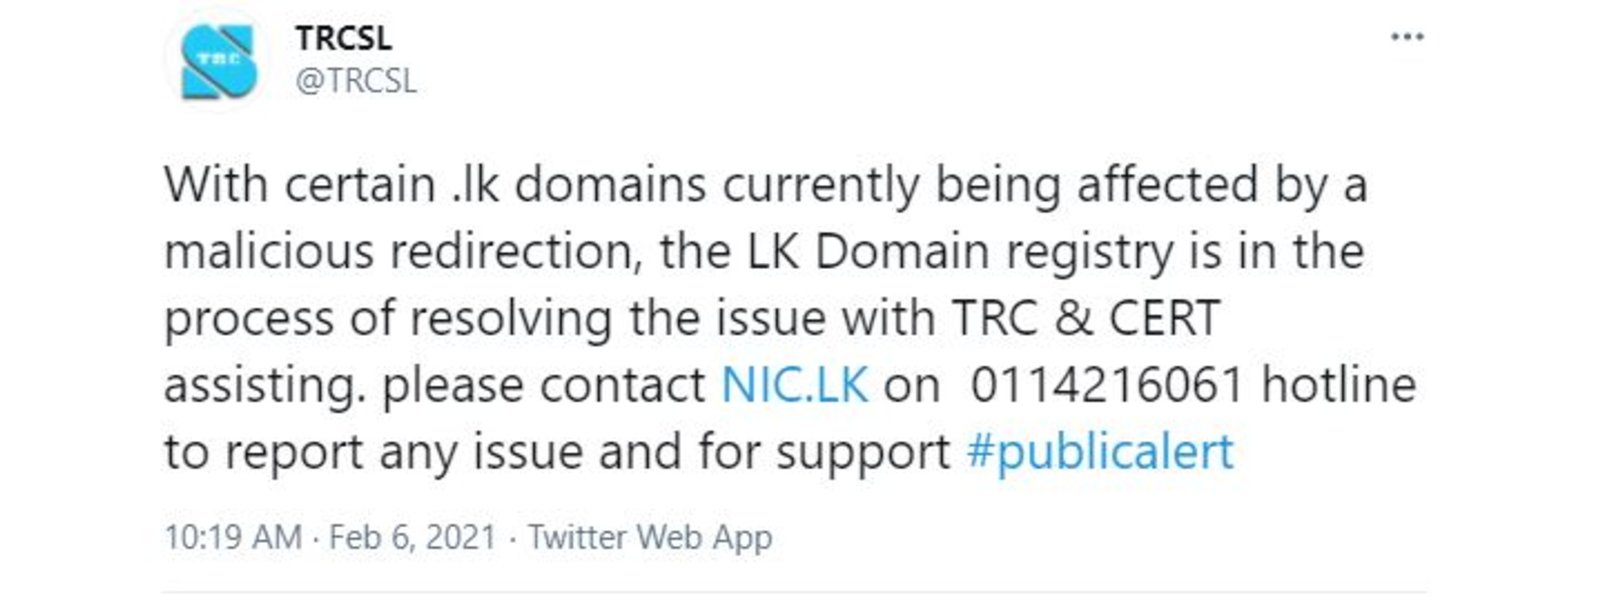 .LK domain affected by malicious redirection